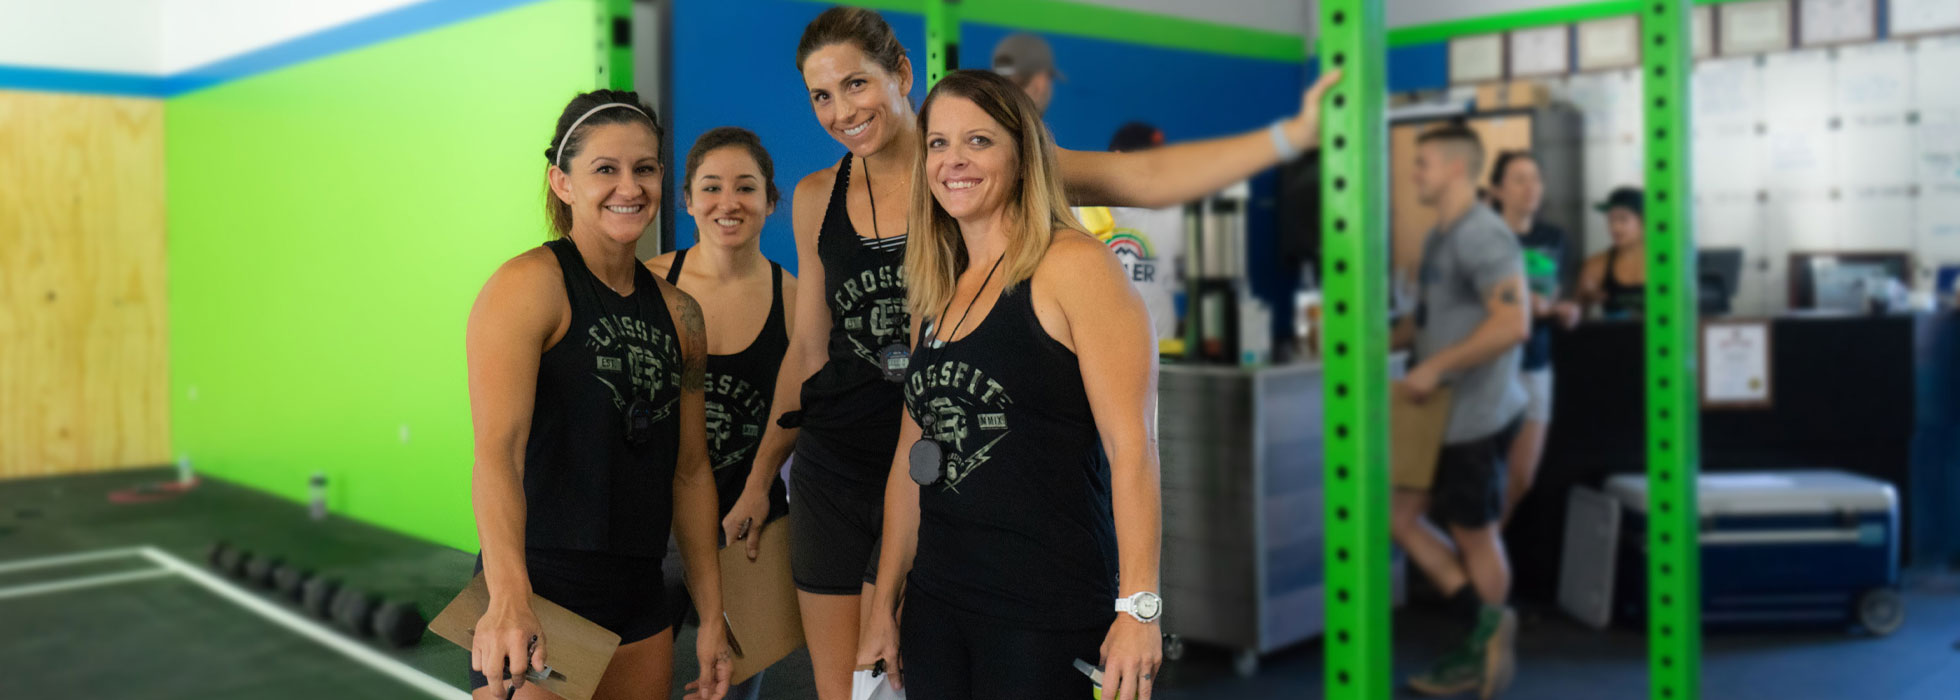 Top 5 Best Gyms To Join Near Riverside